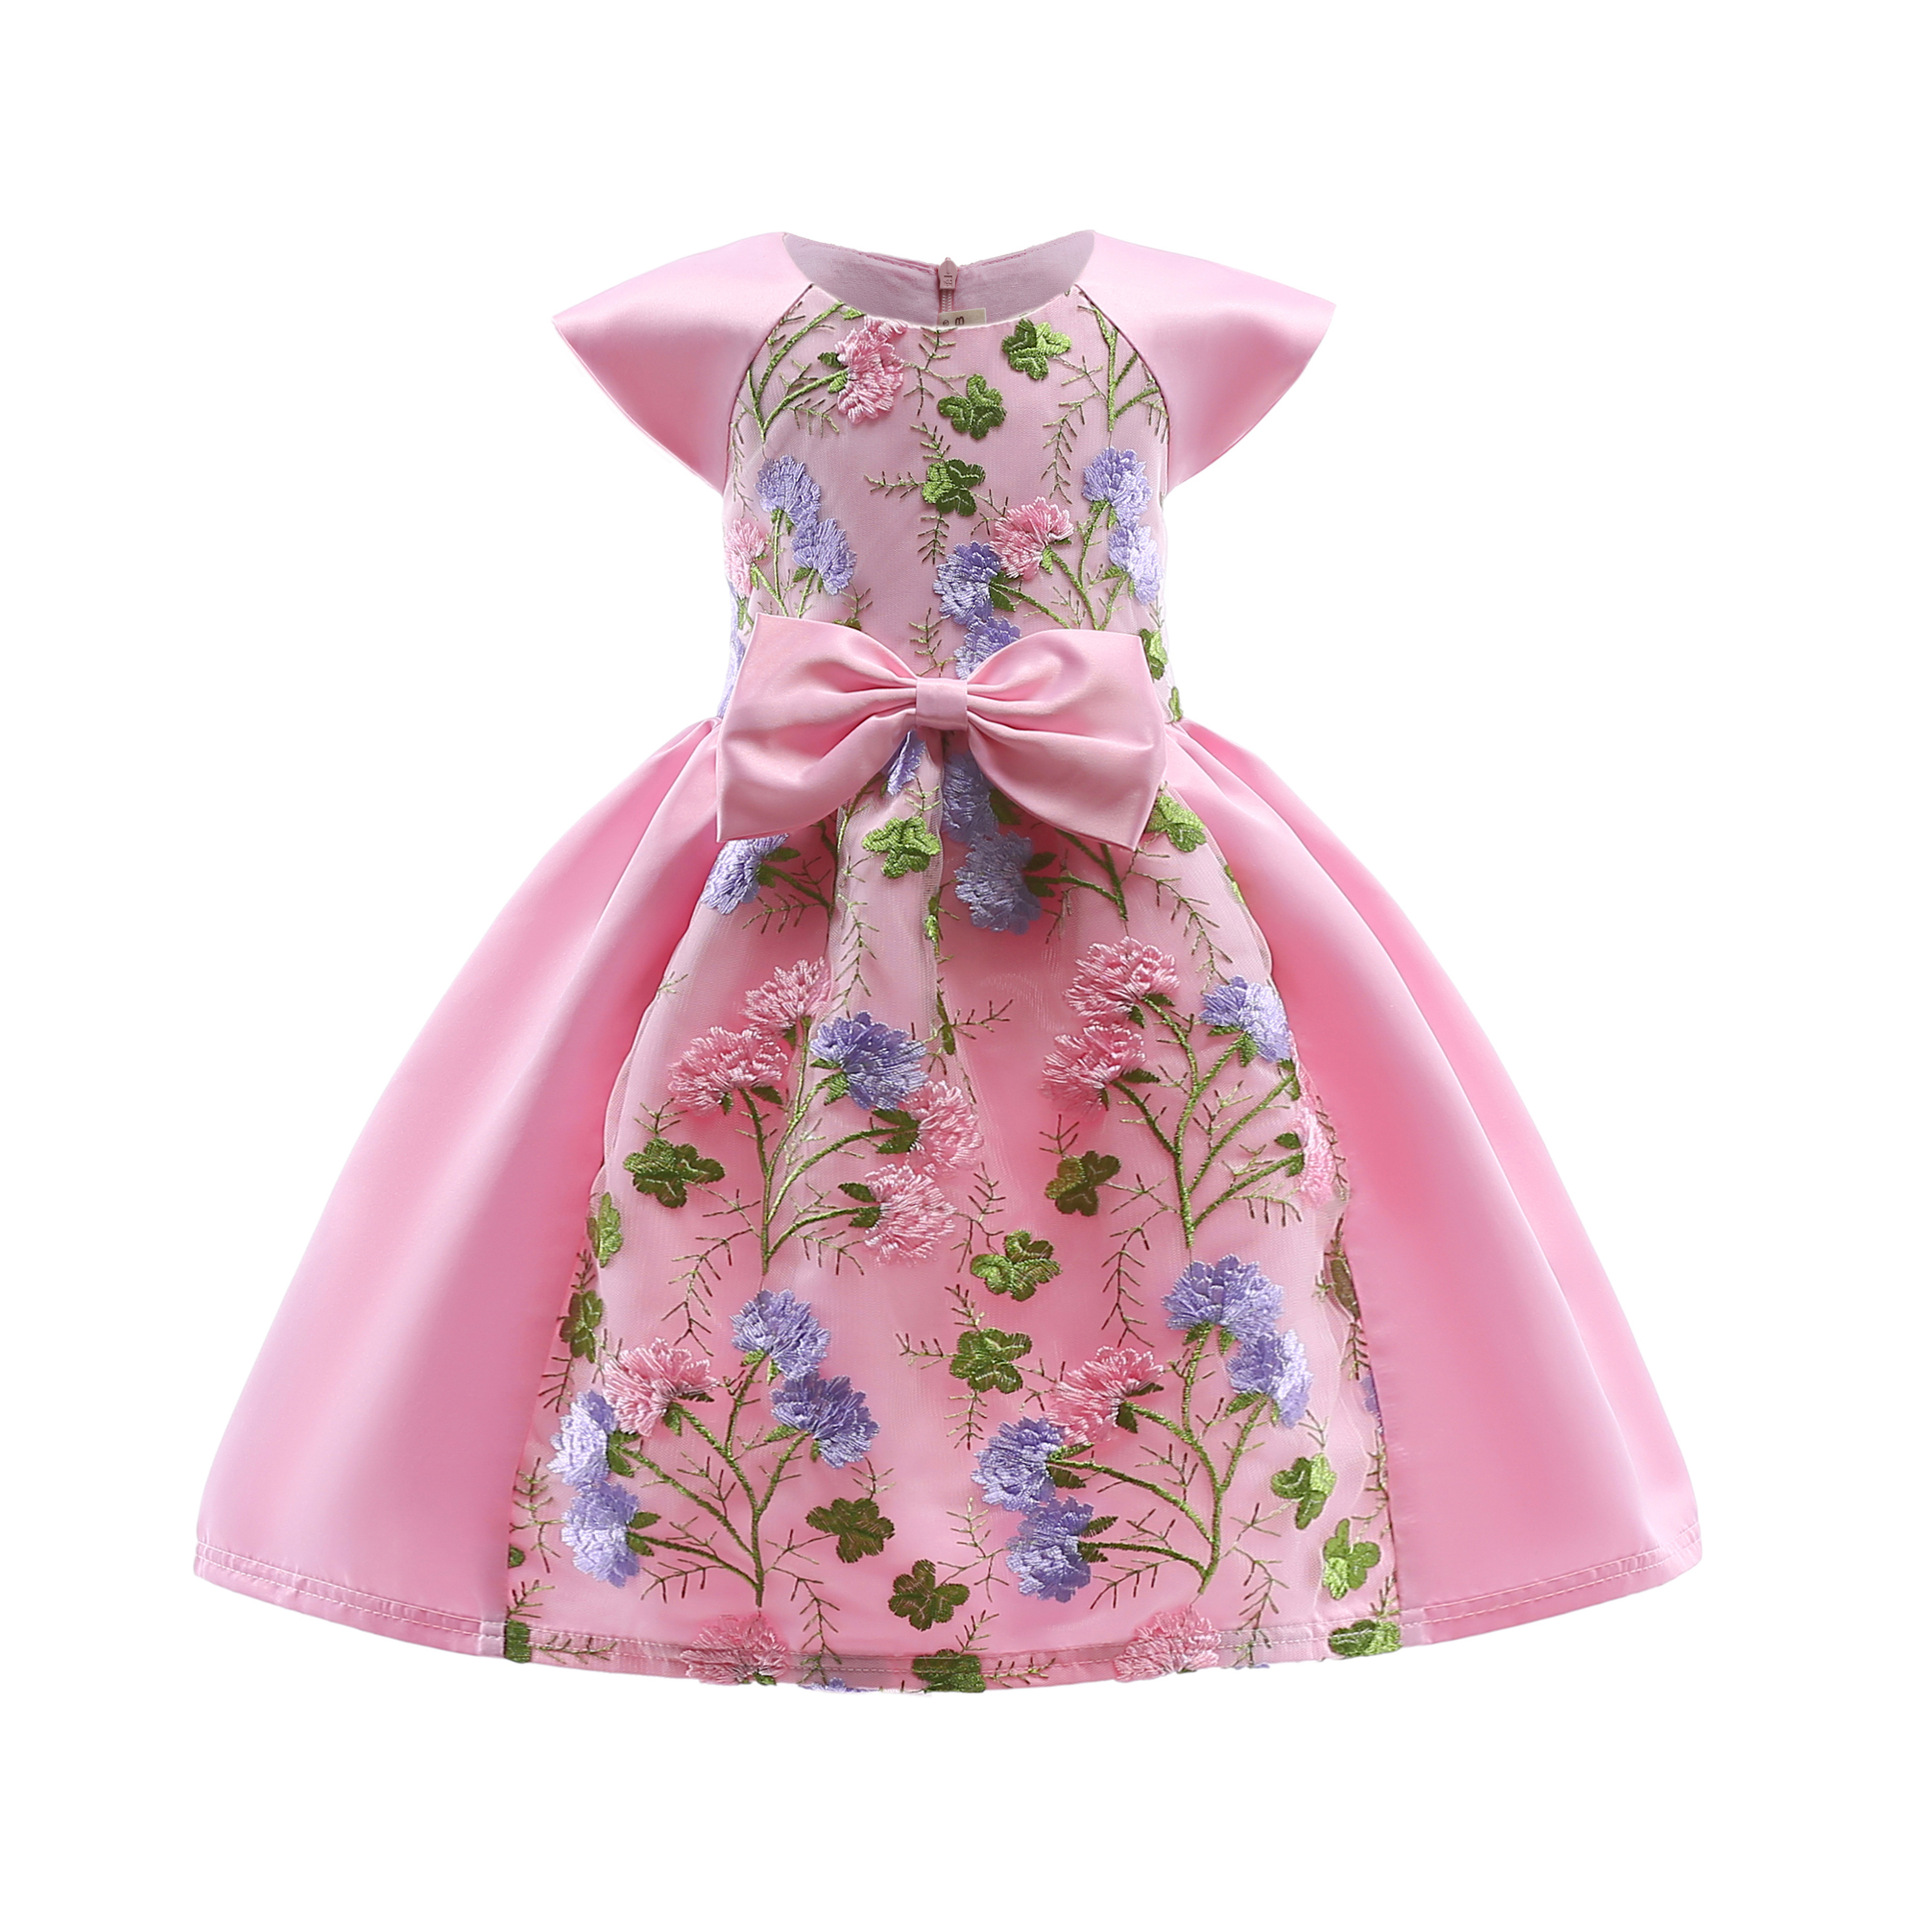 Little Girls Dress Embroidered Flower Girl Princess Dress Kid Party Wedding Pageant Lace Tulle Birthday Gown Girls Costumes vintage lace baby girl wedding pageant dress infant princess little girls birthday party dress lace big bow sleeveless dress